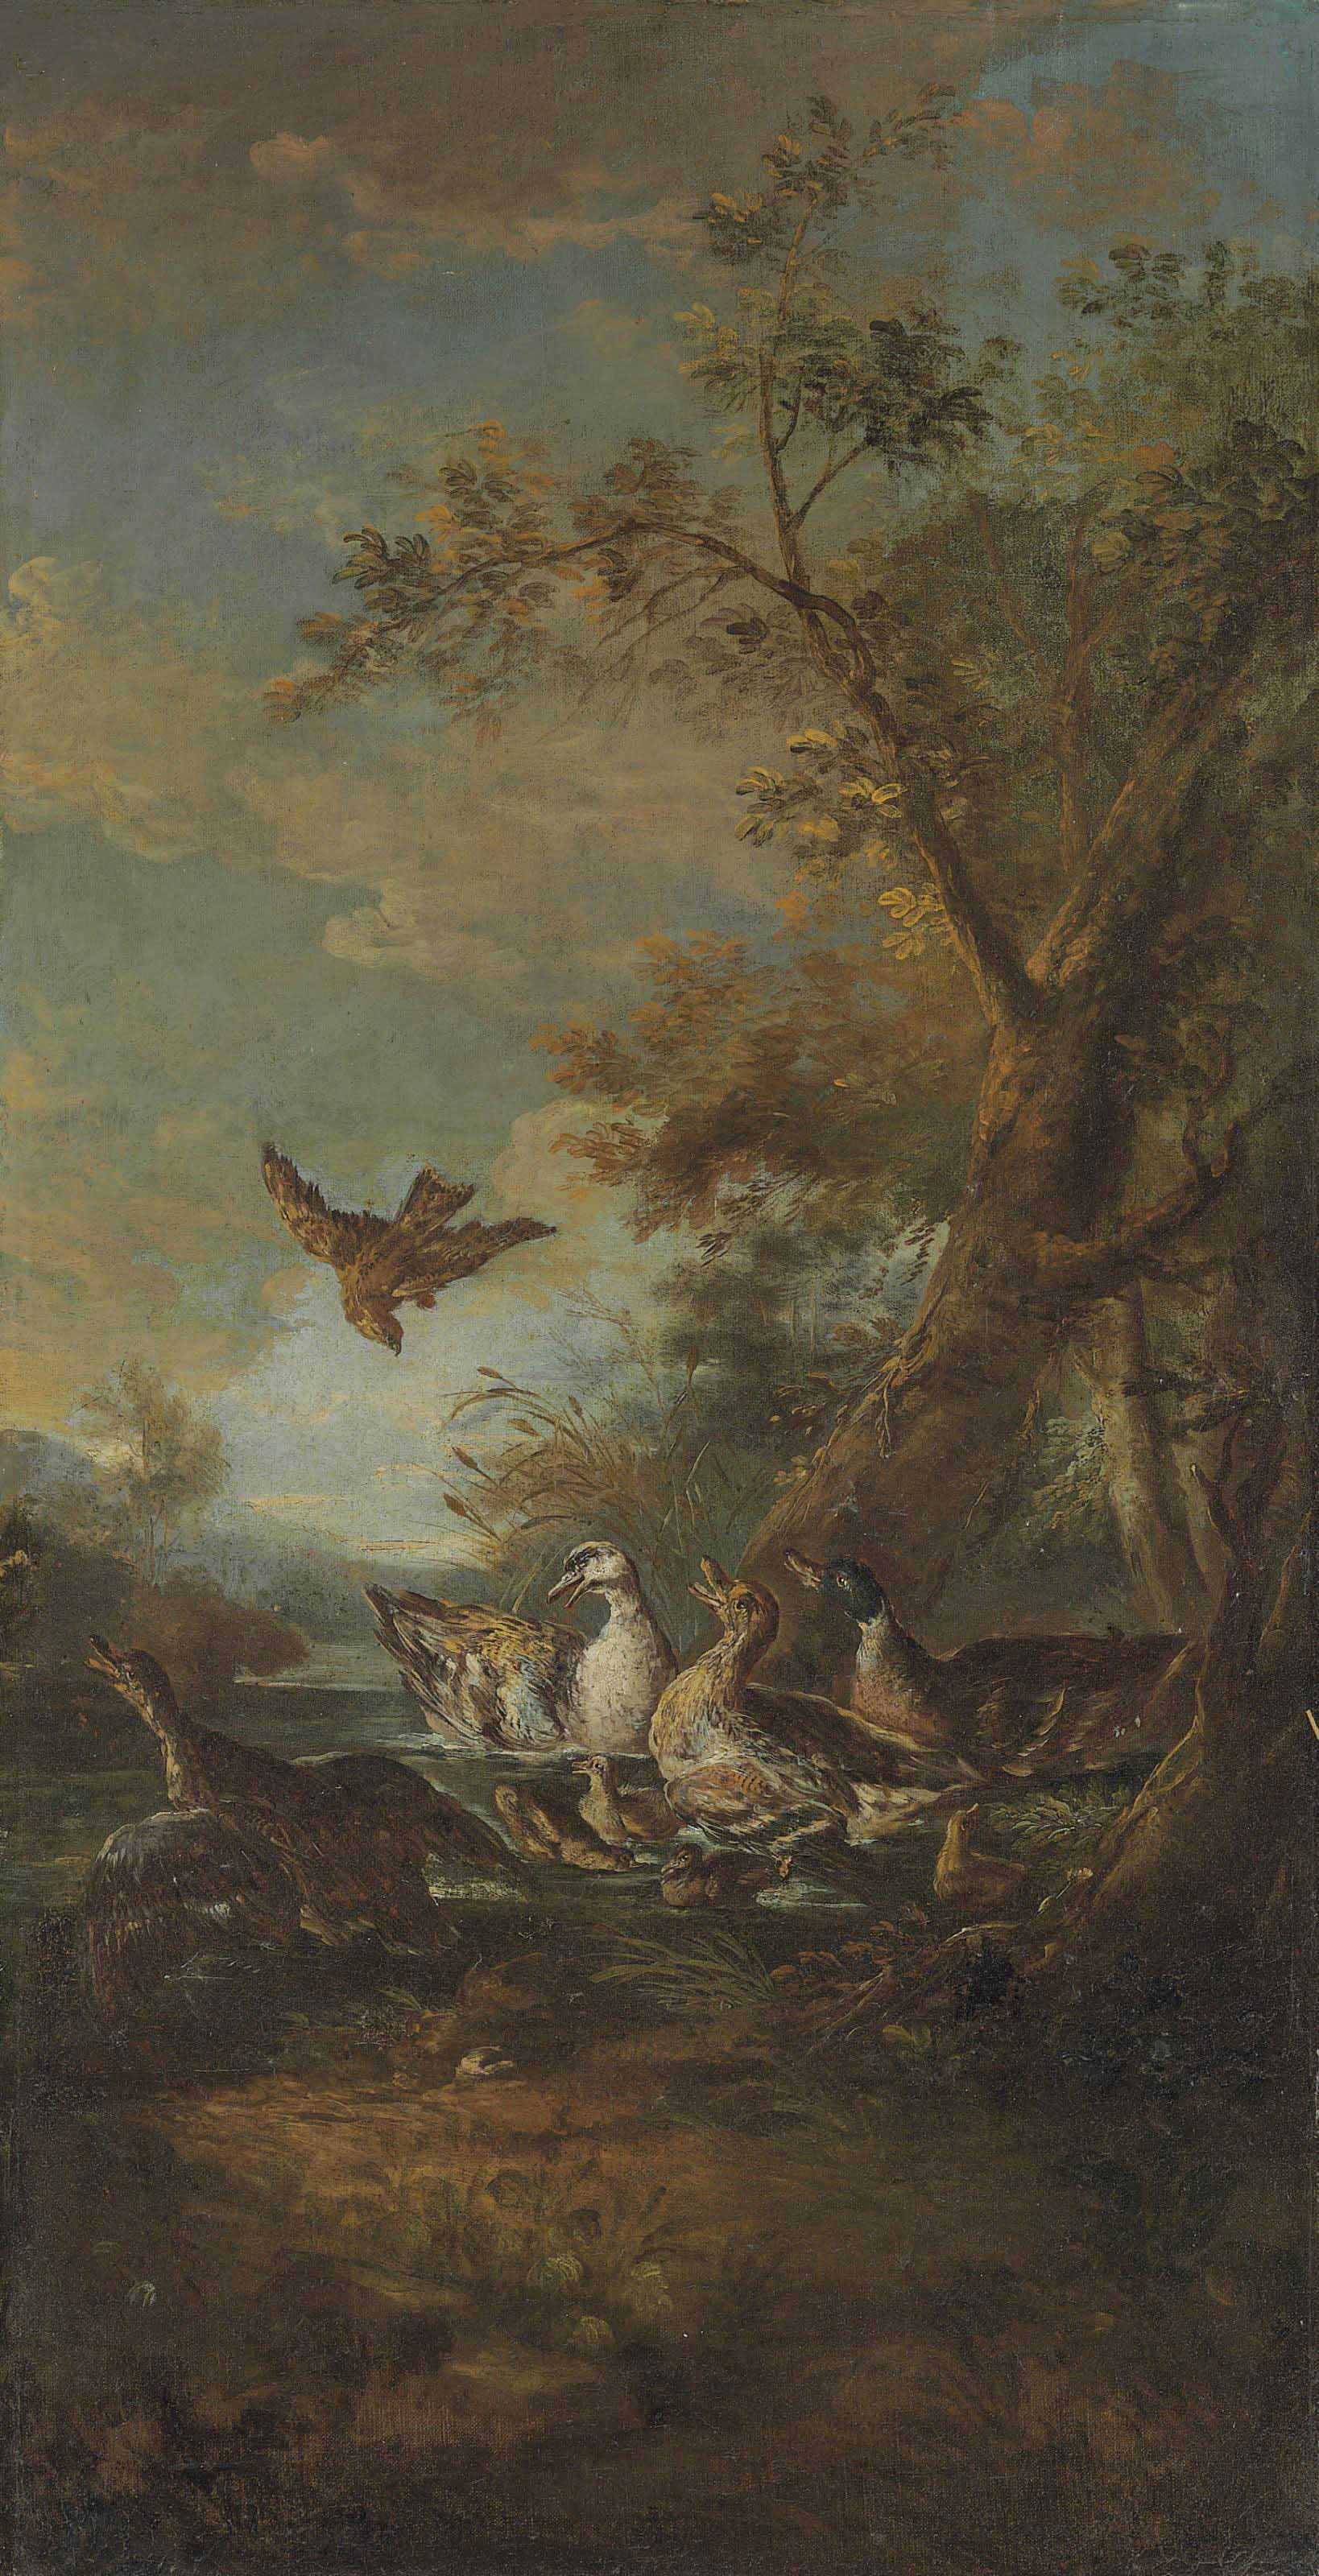 A bird of prey, ducks and ducklings in a landscape